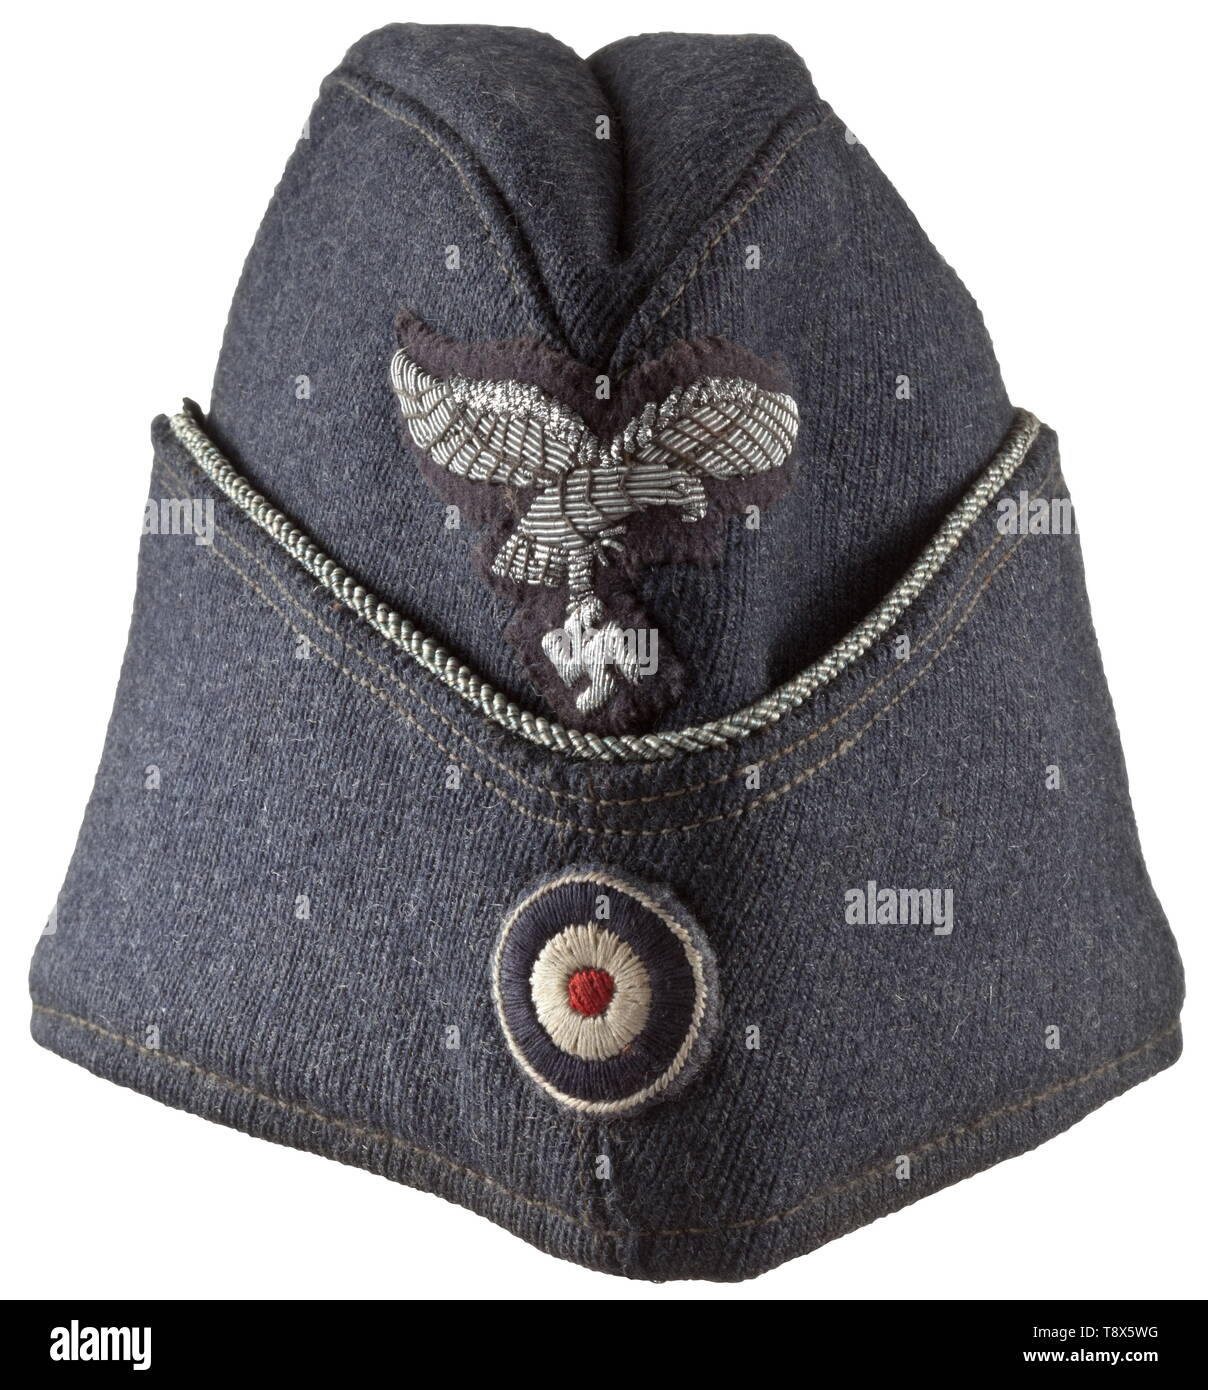 A garrison cap for officers of the Luftwaffe Luftwaffe-blue tricot cloth, officer's braid, steel blue silk liner (maker stamping 'ALMI Uniformen und Mützen Luxemburg 1942 56'), hand-embroidered Luftwaffe eagle, cockade. In a mint state of preservation. historic, historical, Air Force, branch of service, branches of service, armed service, armed services, military, militaria, air forces, object, objects, stills, clipping, clippings, cut out, cut-out, cut-outs, 20th century, Editorial-Use-Only - Stock Image